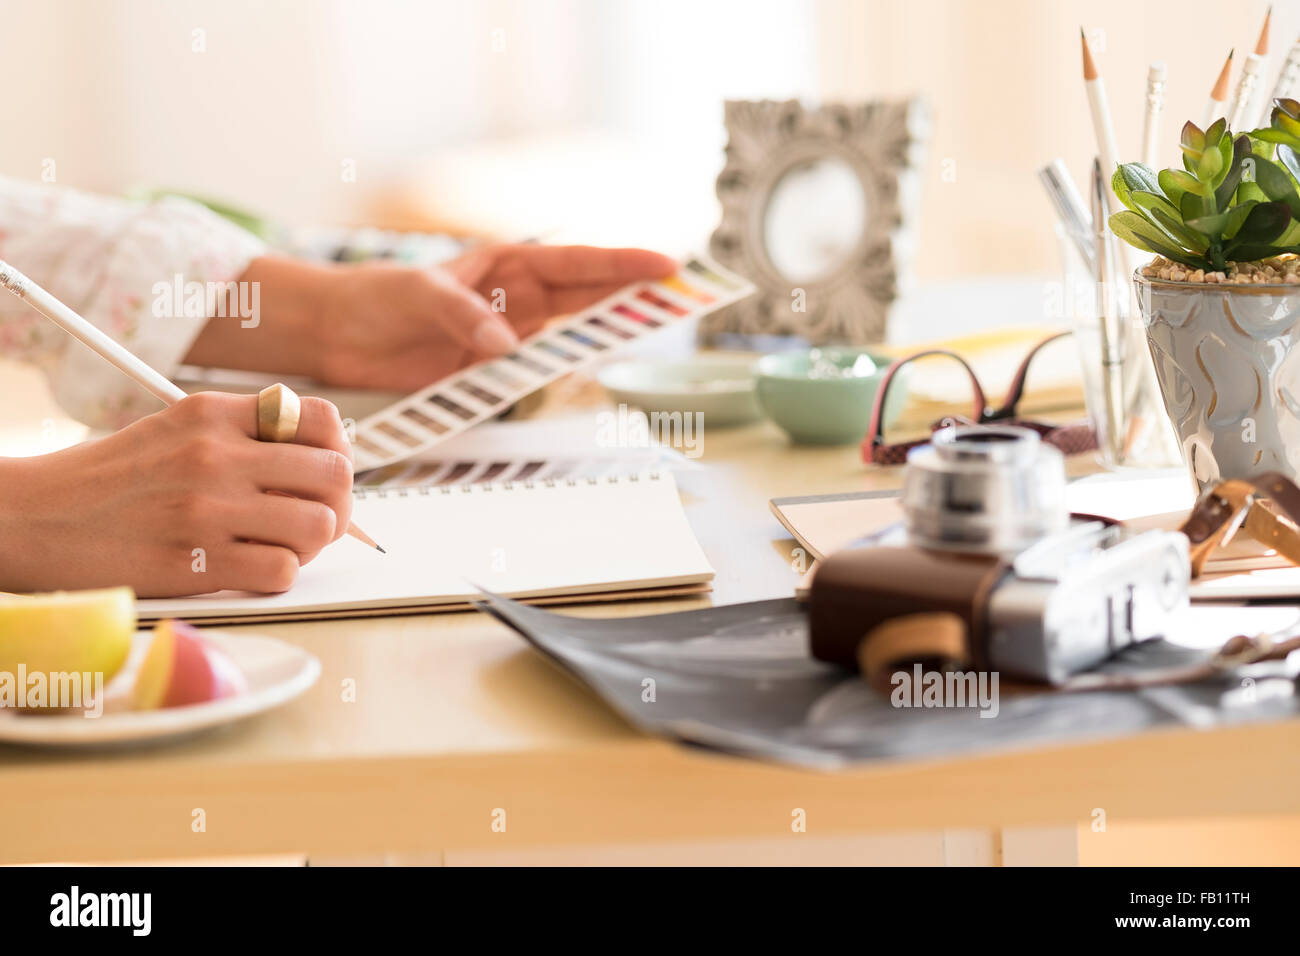 Young woman writing in note pad - Stock Image